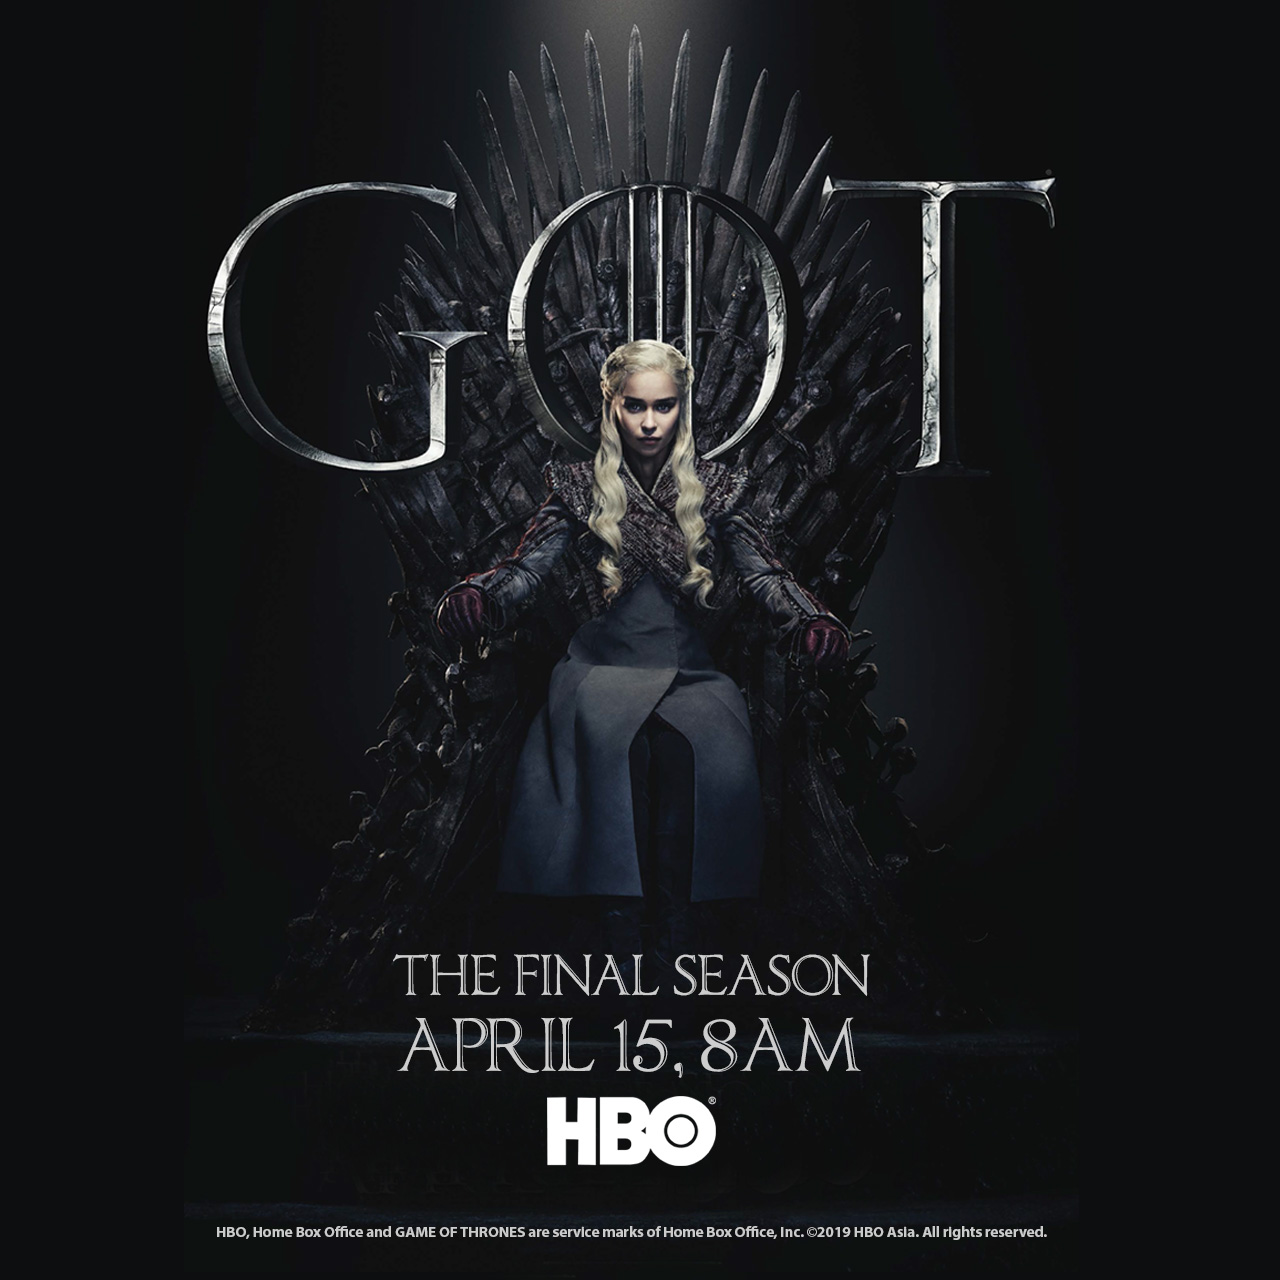 GAME OF THRONES SEASON 8 PREMIERE SCREENING IN SINGAPORE